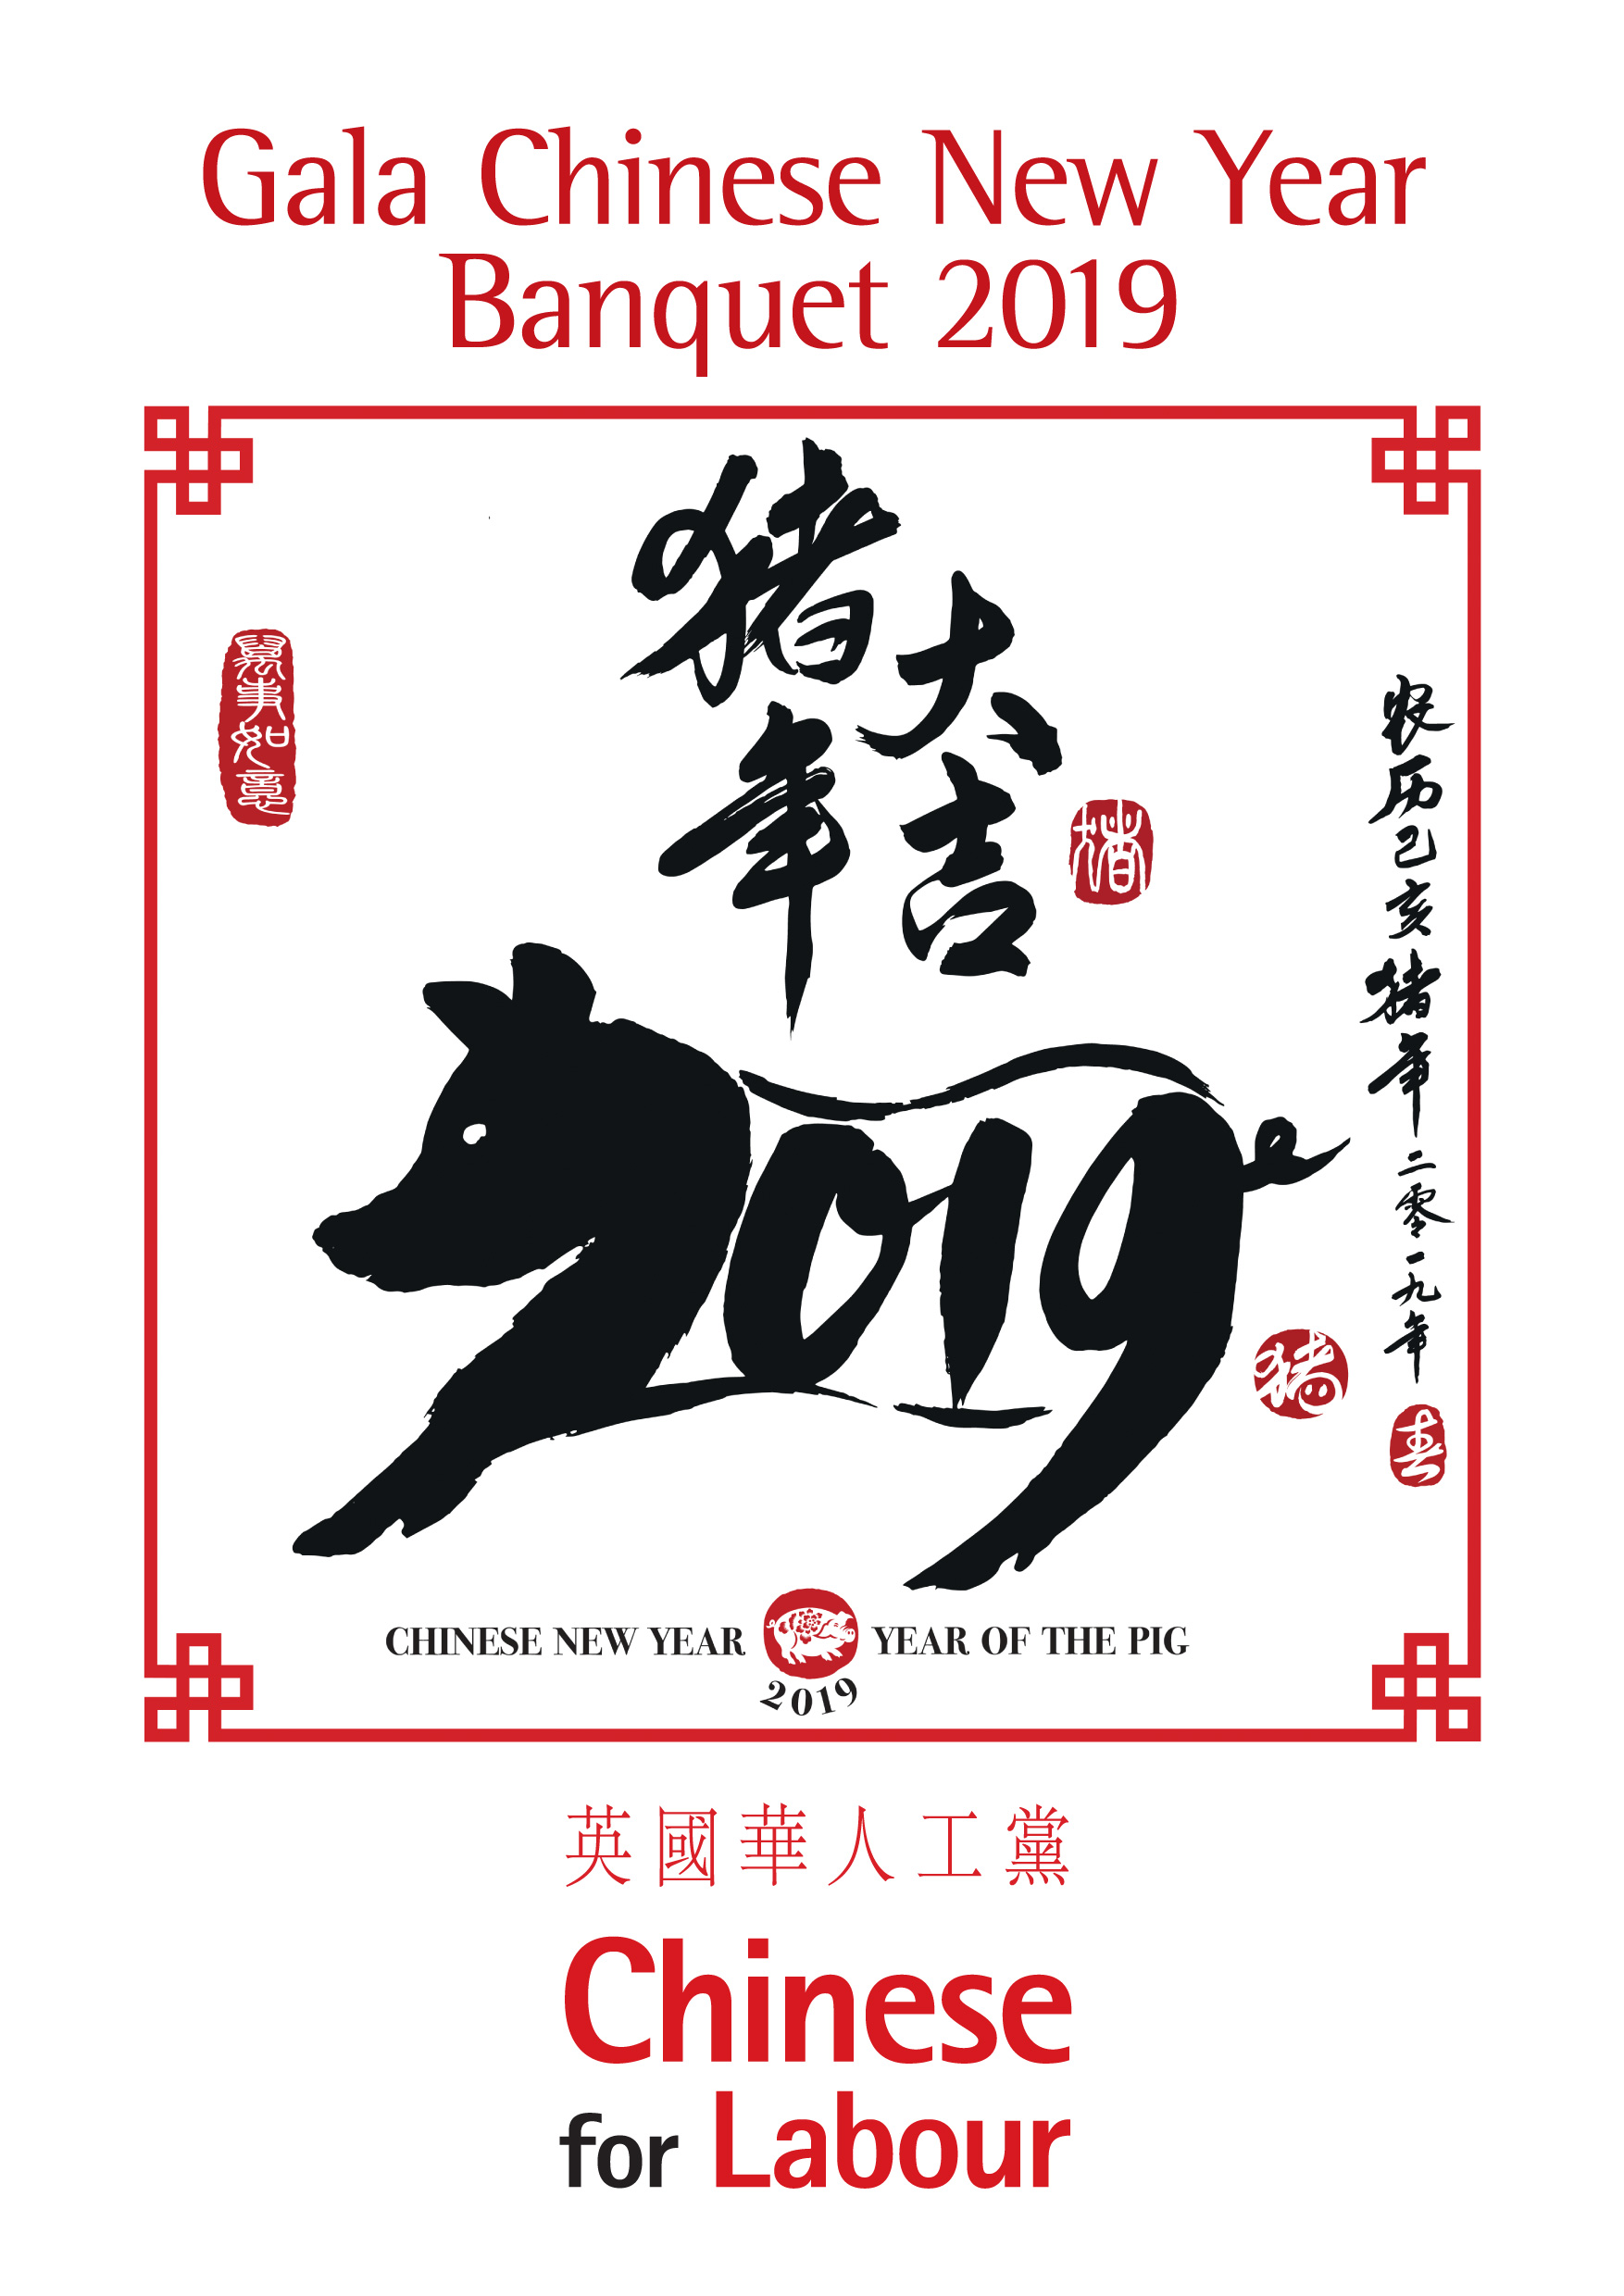 Asian new year 2009 when